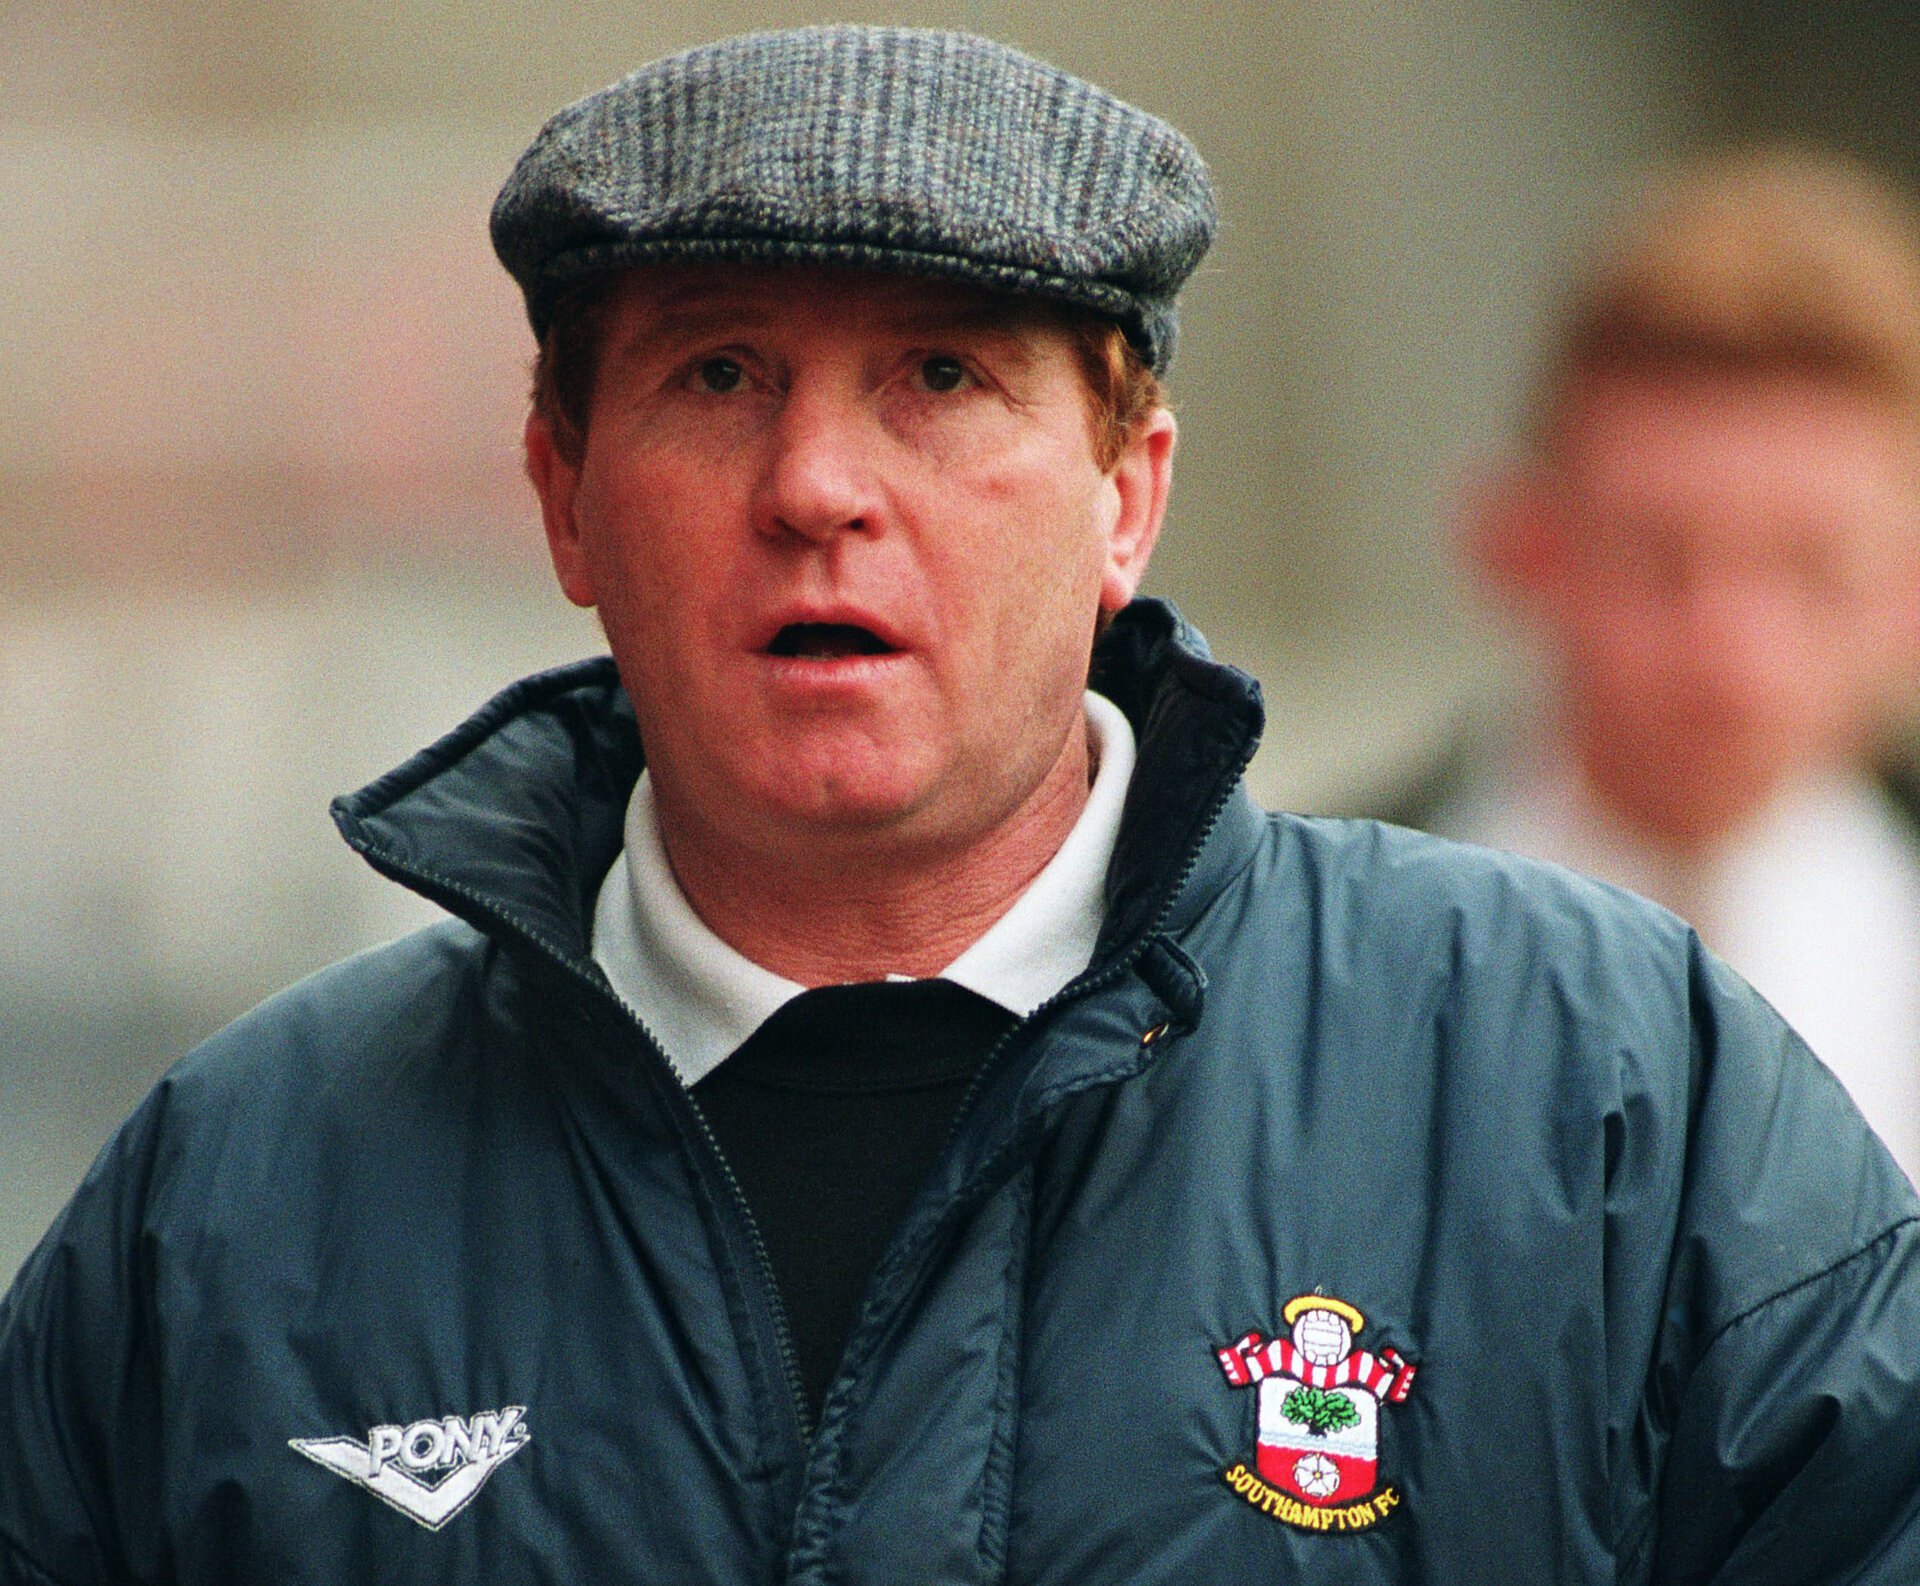 Football - Southampton v Wimbledon - 93/94 - Premier League - The Dell - 26/2/94  Alan Ball - Southampton manager  Mandatory Credit: Action Images